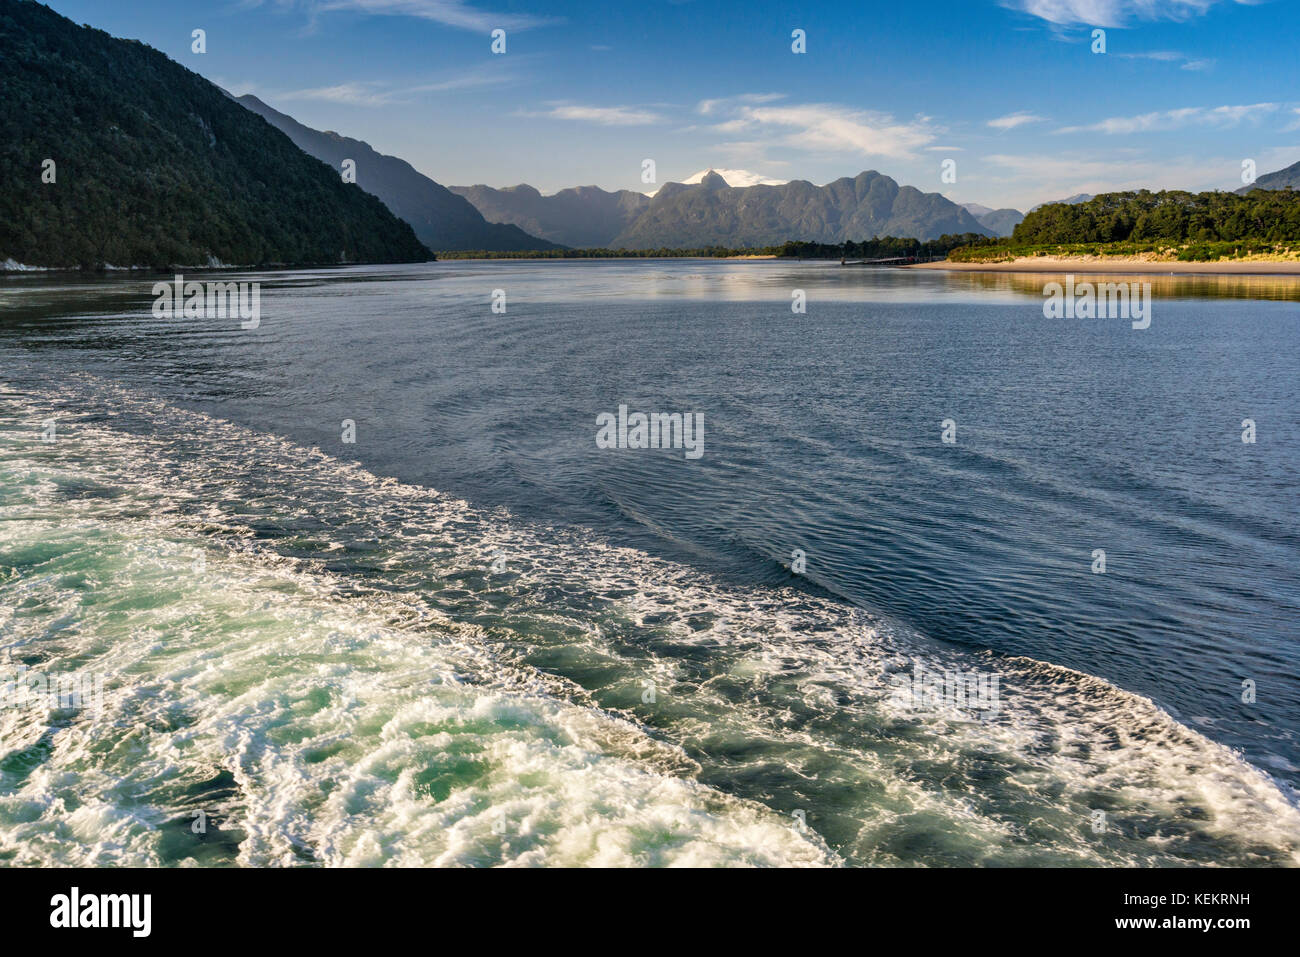 Wake of Quelat ferry on its way from Puerto Raul Marin Balamaceda, Aysen Region, Patagonia, Chile - Stock Image